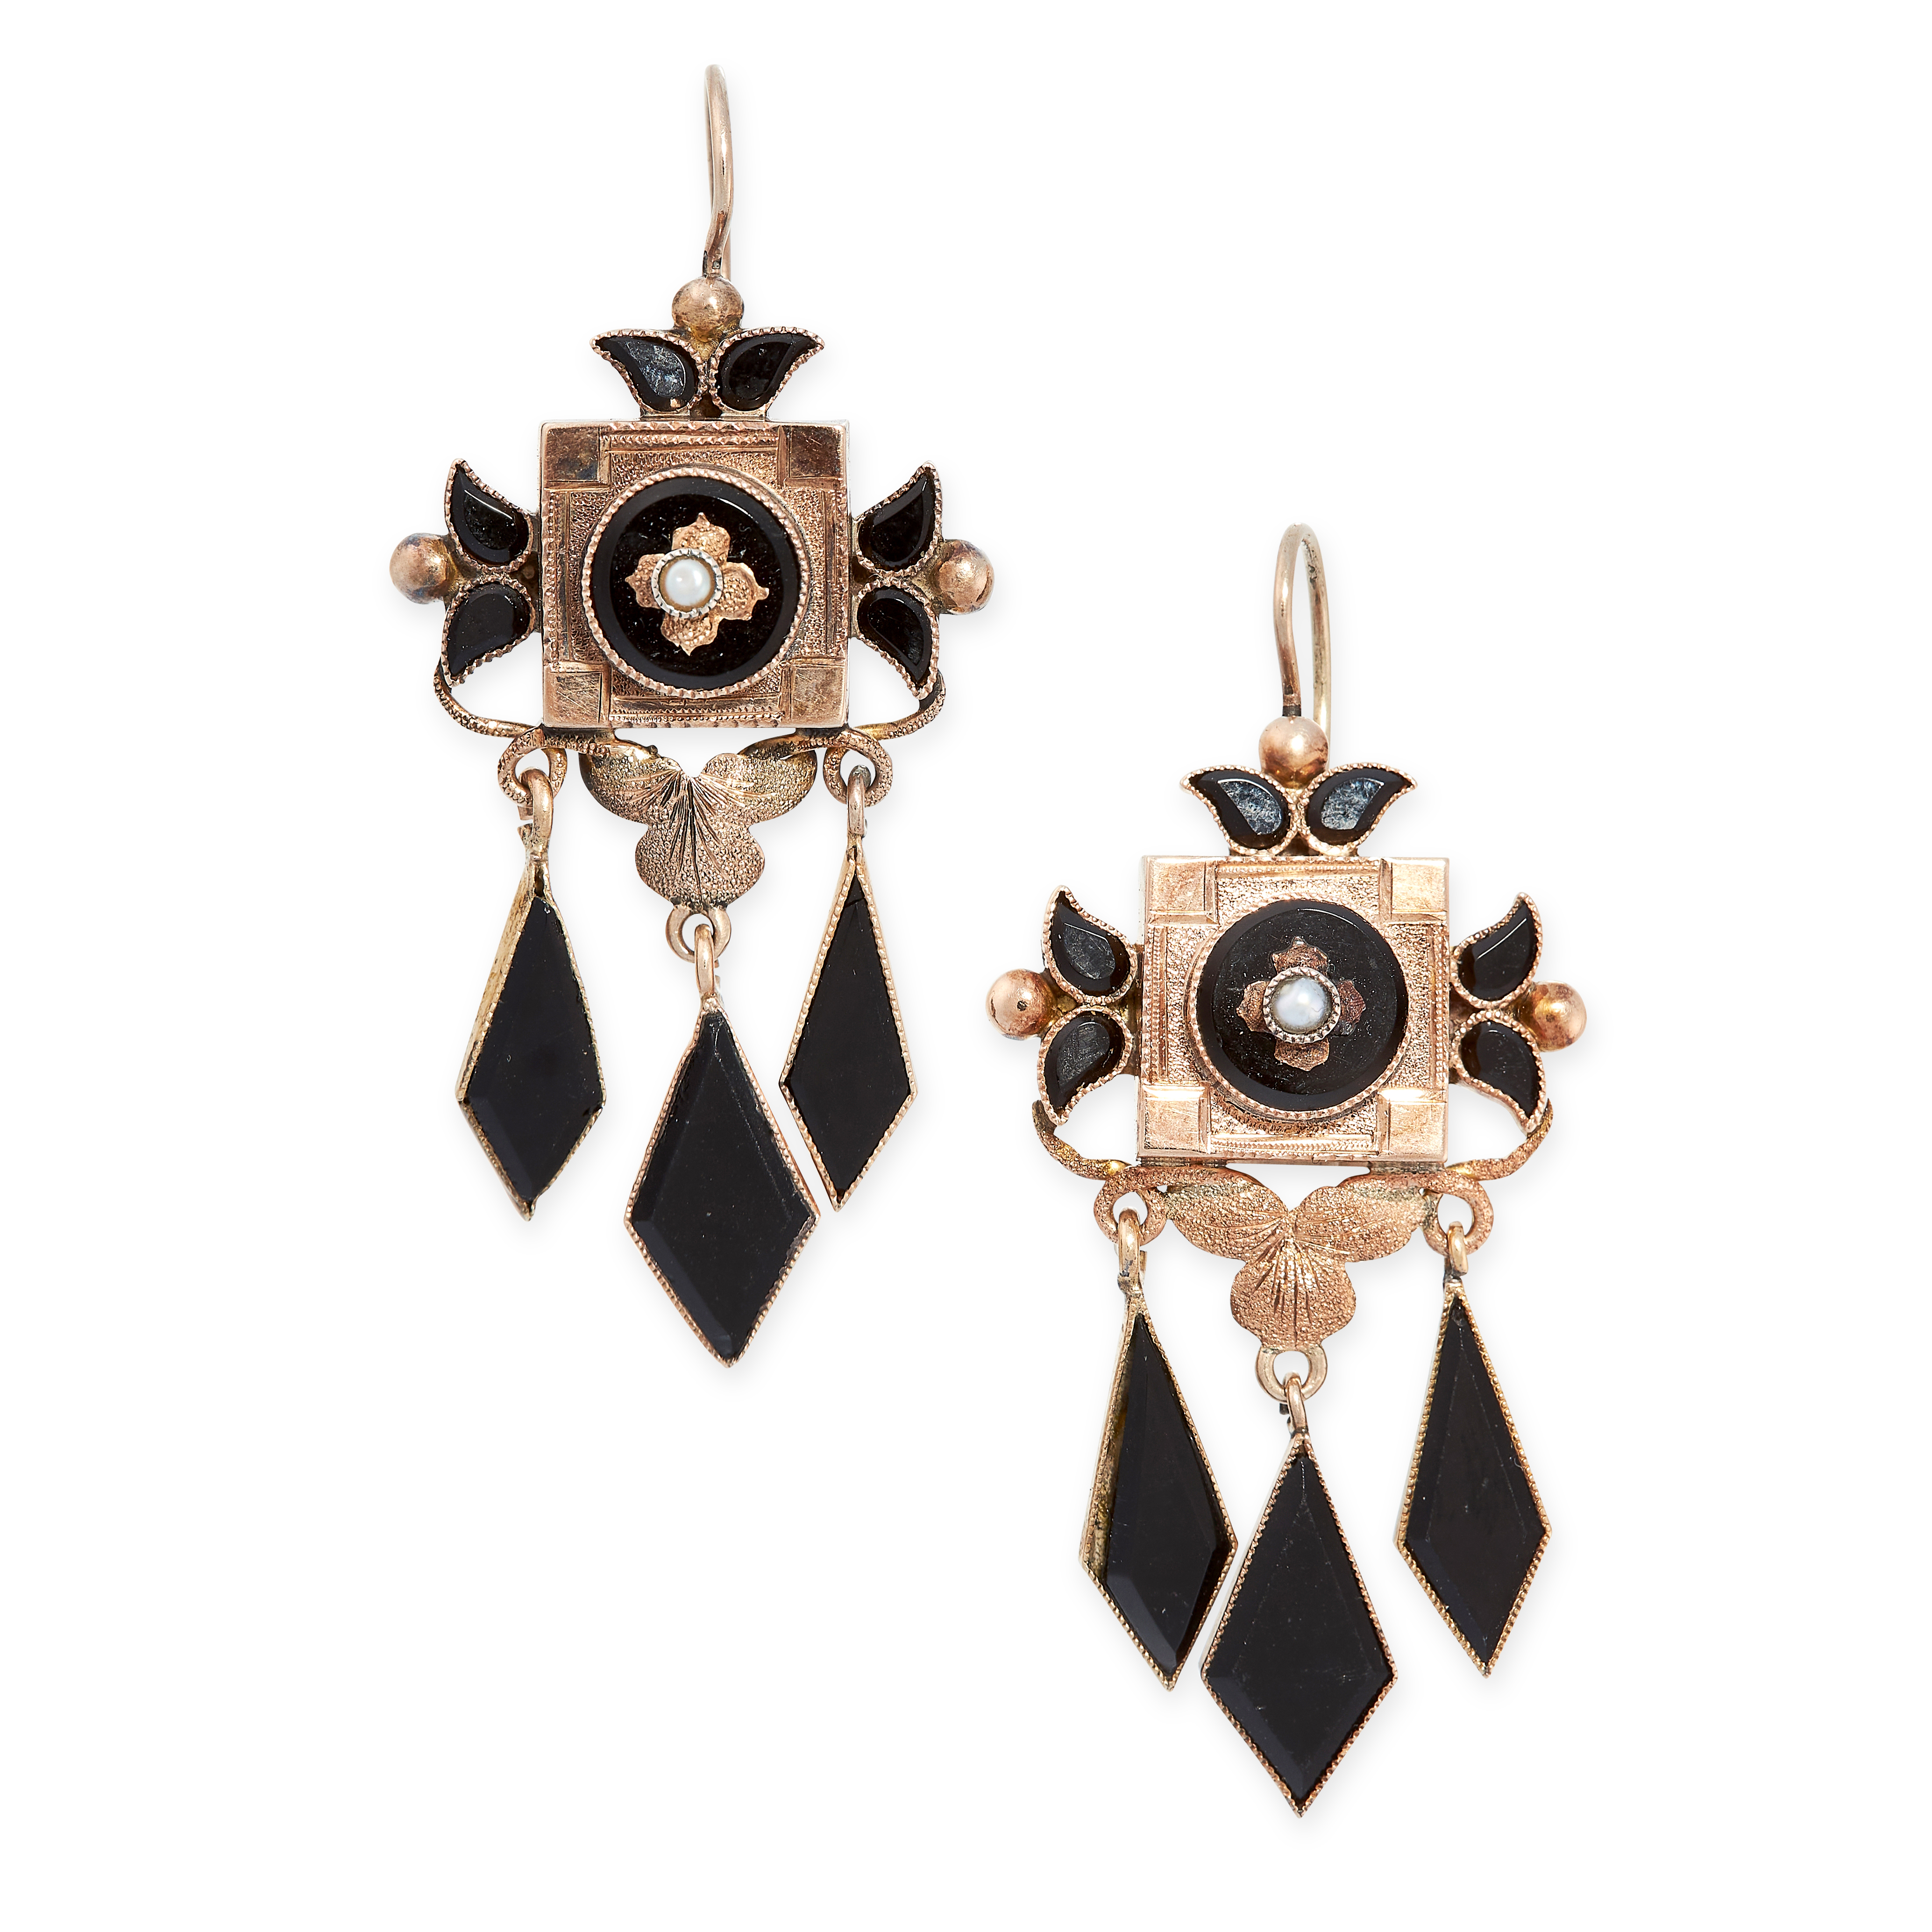 A PAIR OF ANTIQUE ONYX AND PEARL EARRINGS, 19TH CENTURY in yellow gold, the square faces set with